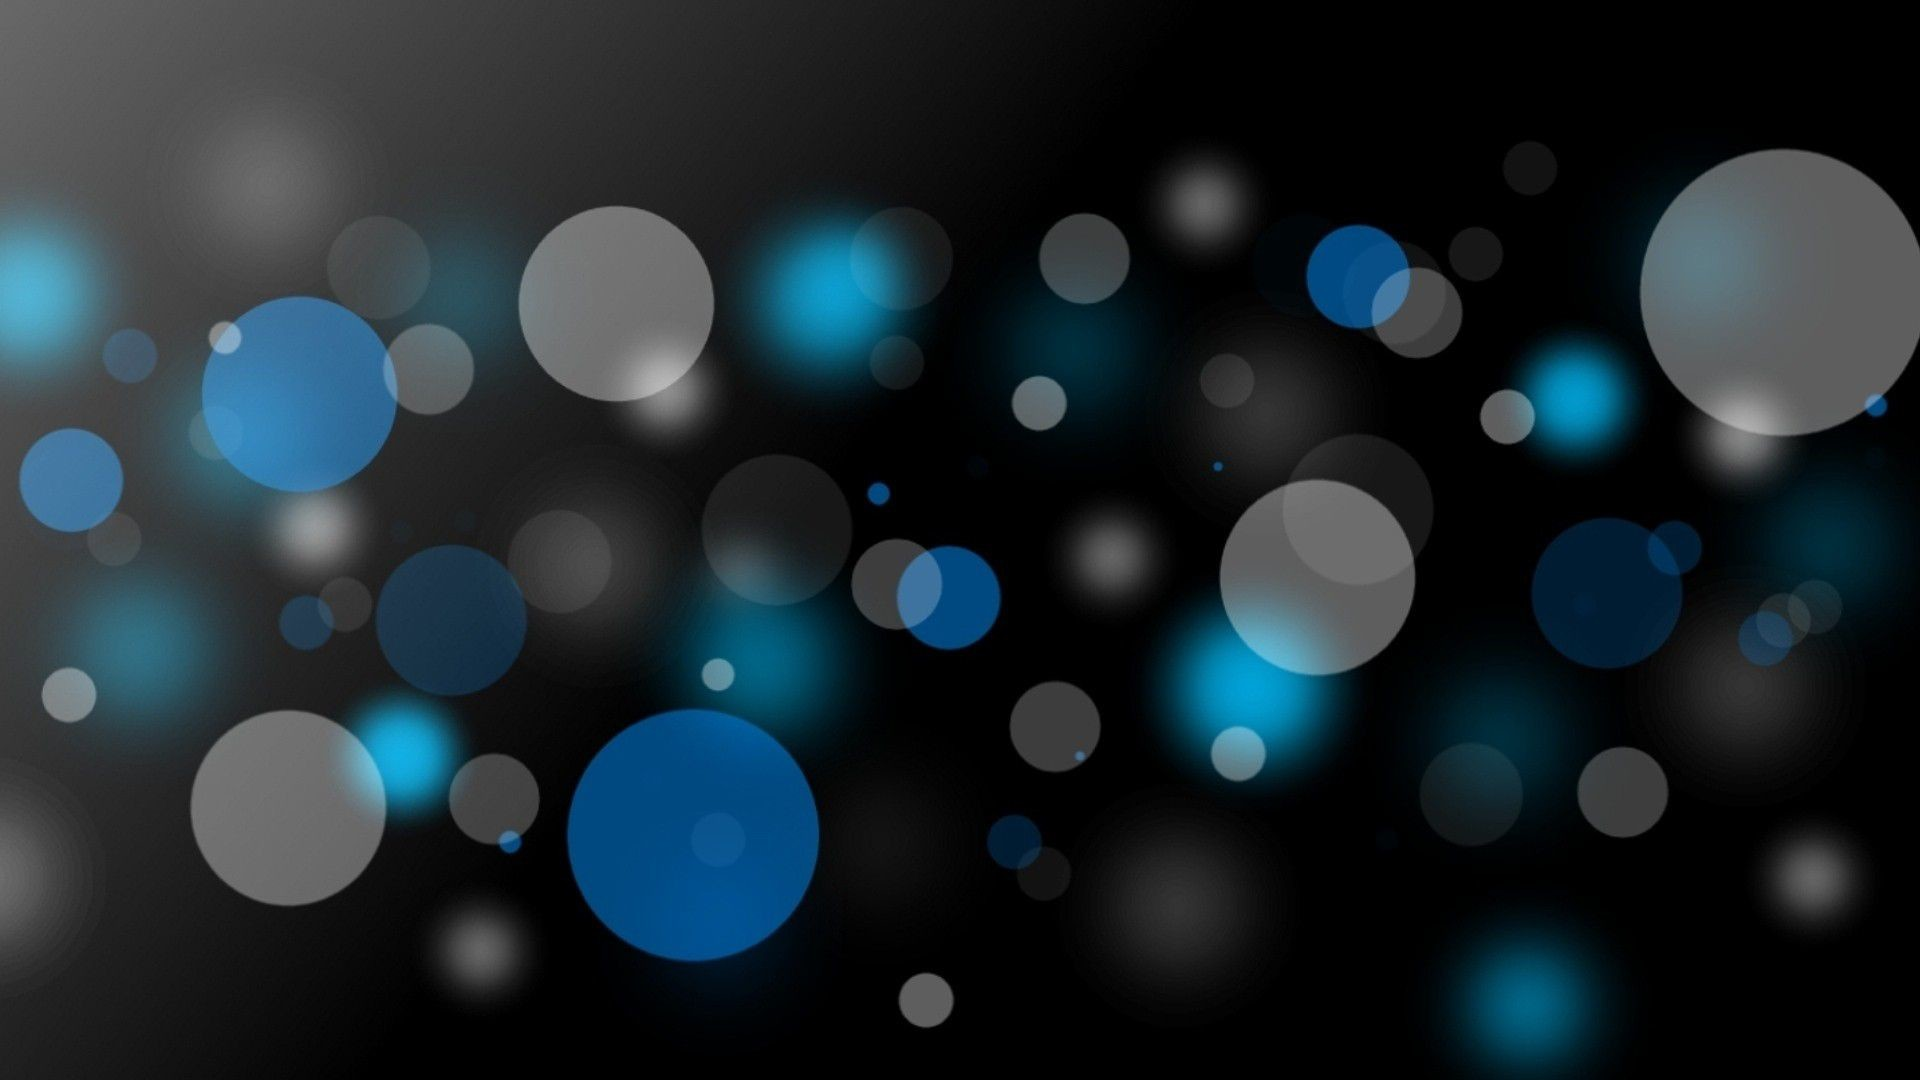 Black Wallpaper 1080p 62 Images